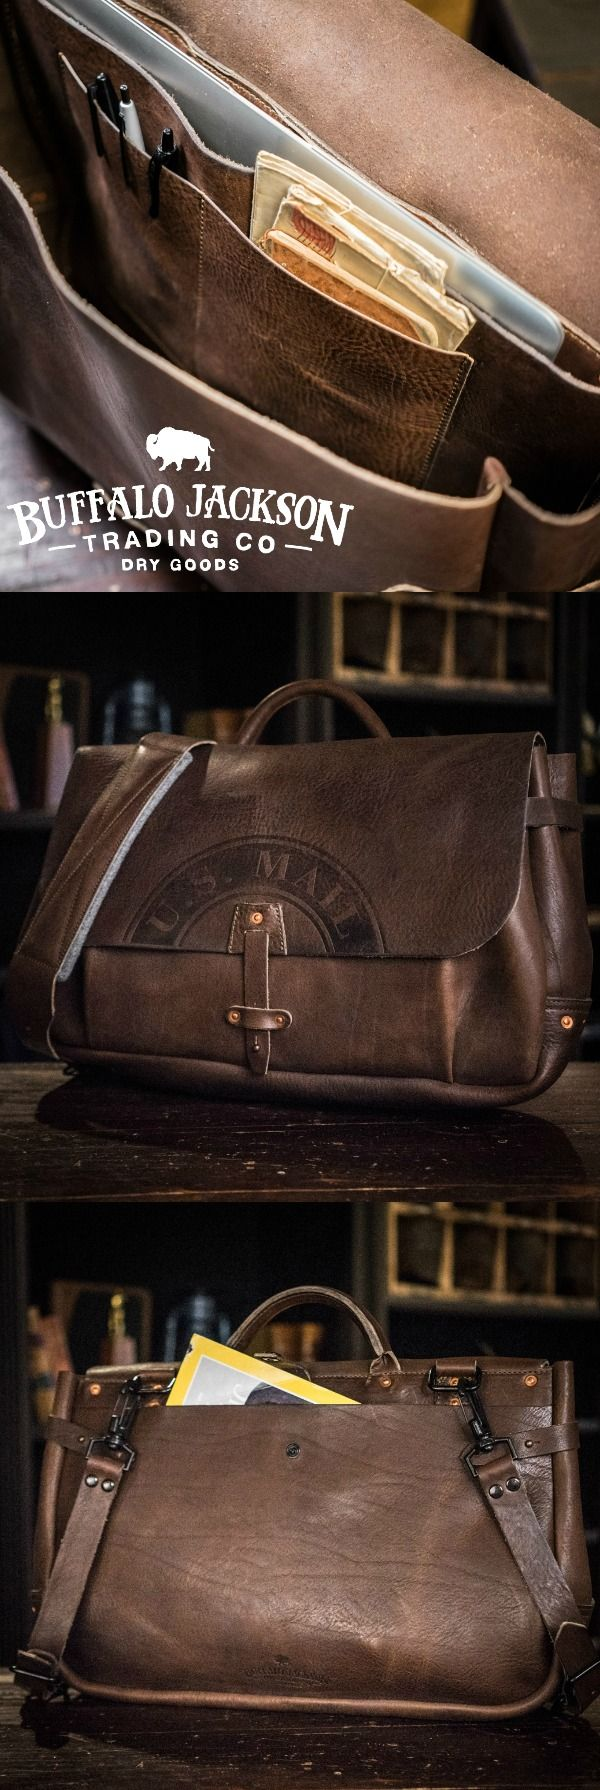 aeb0ad2d6850 Men s vintage full-grain dark brown leather postal messenger mail bag.  Handcrafted to handle whatever you throw at it - work